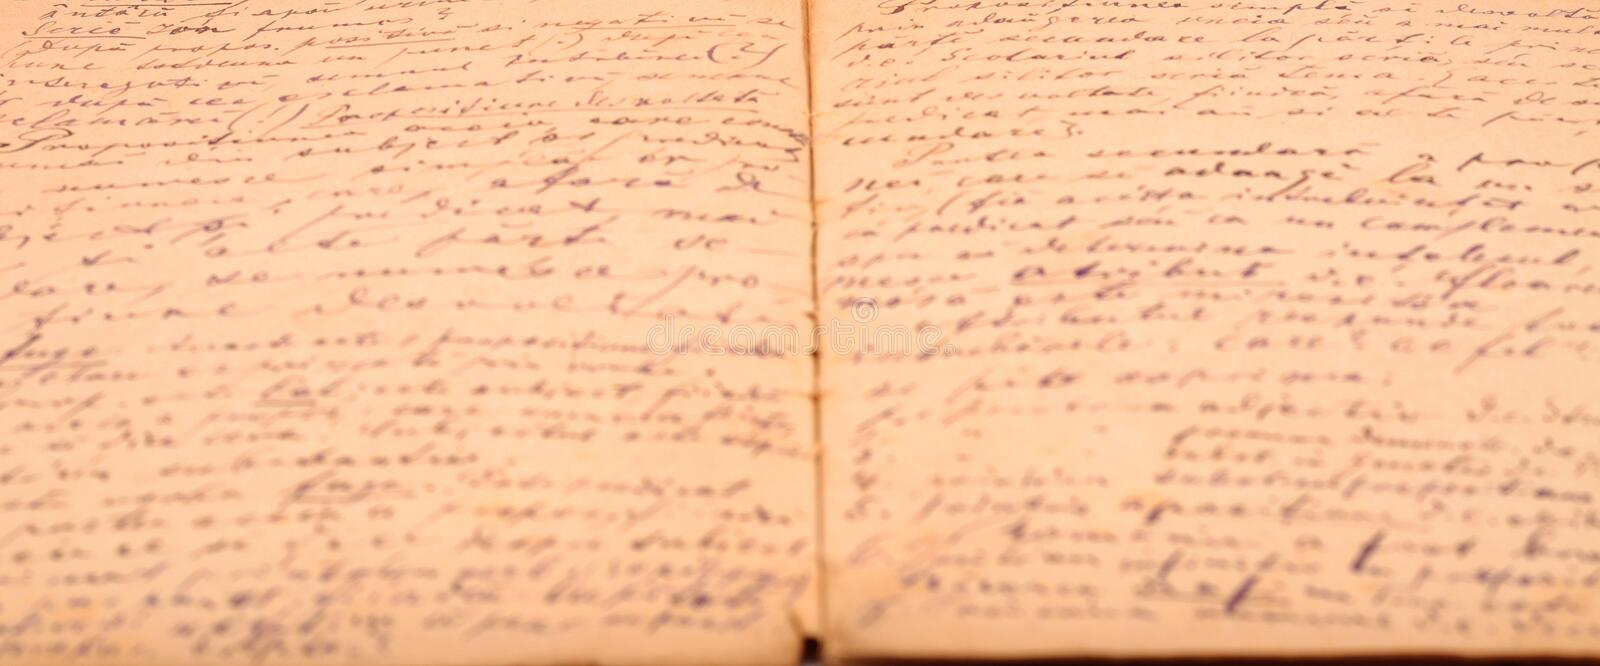 Old diary handwritten. Old diary hand written background royalty free stock photos